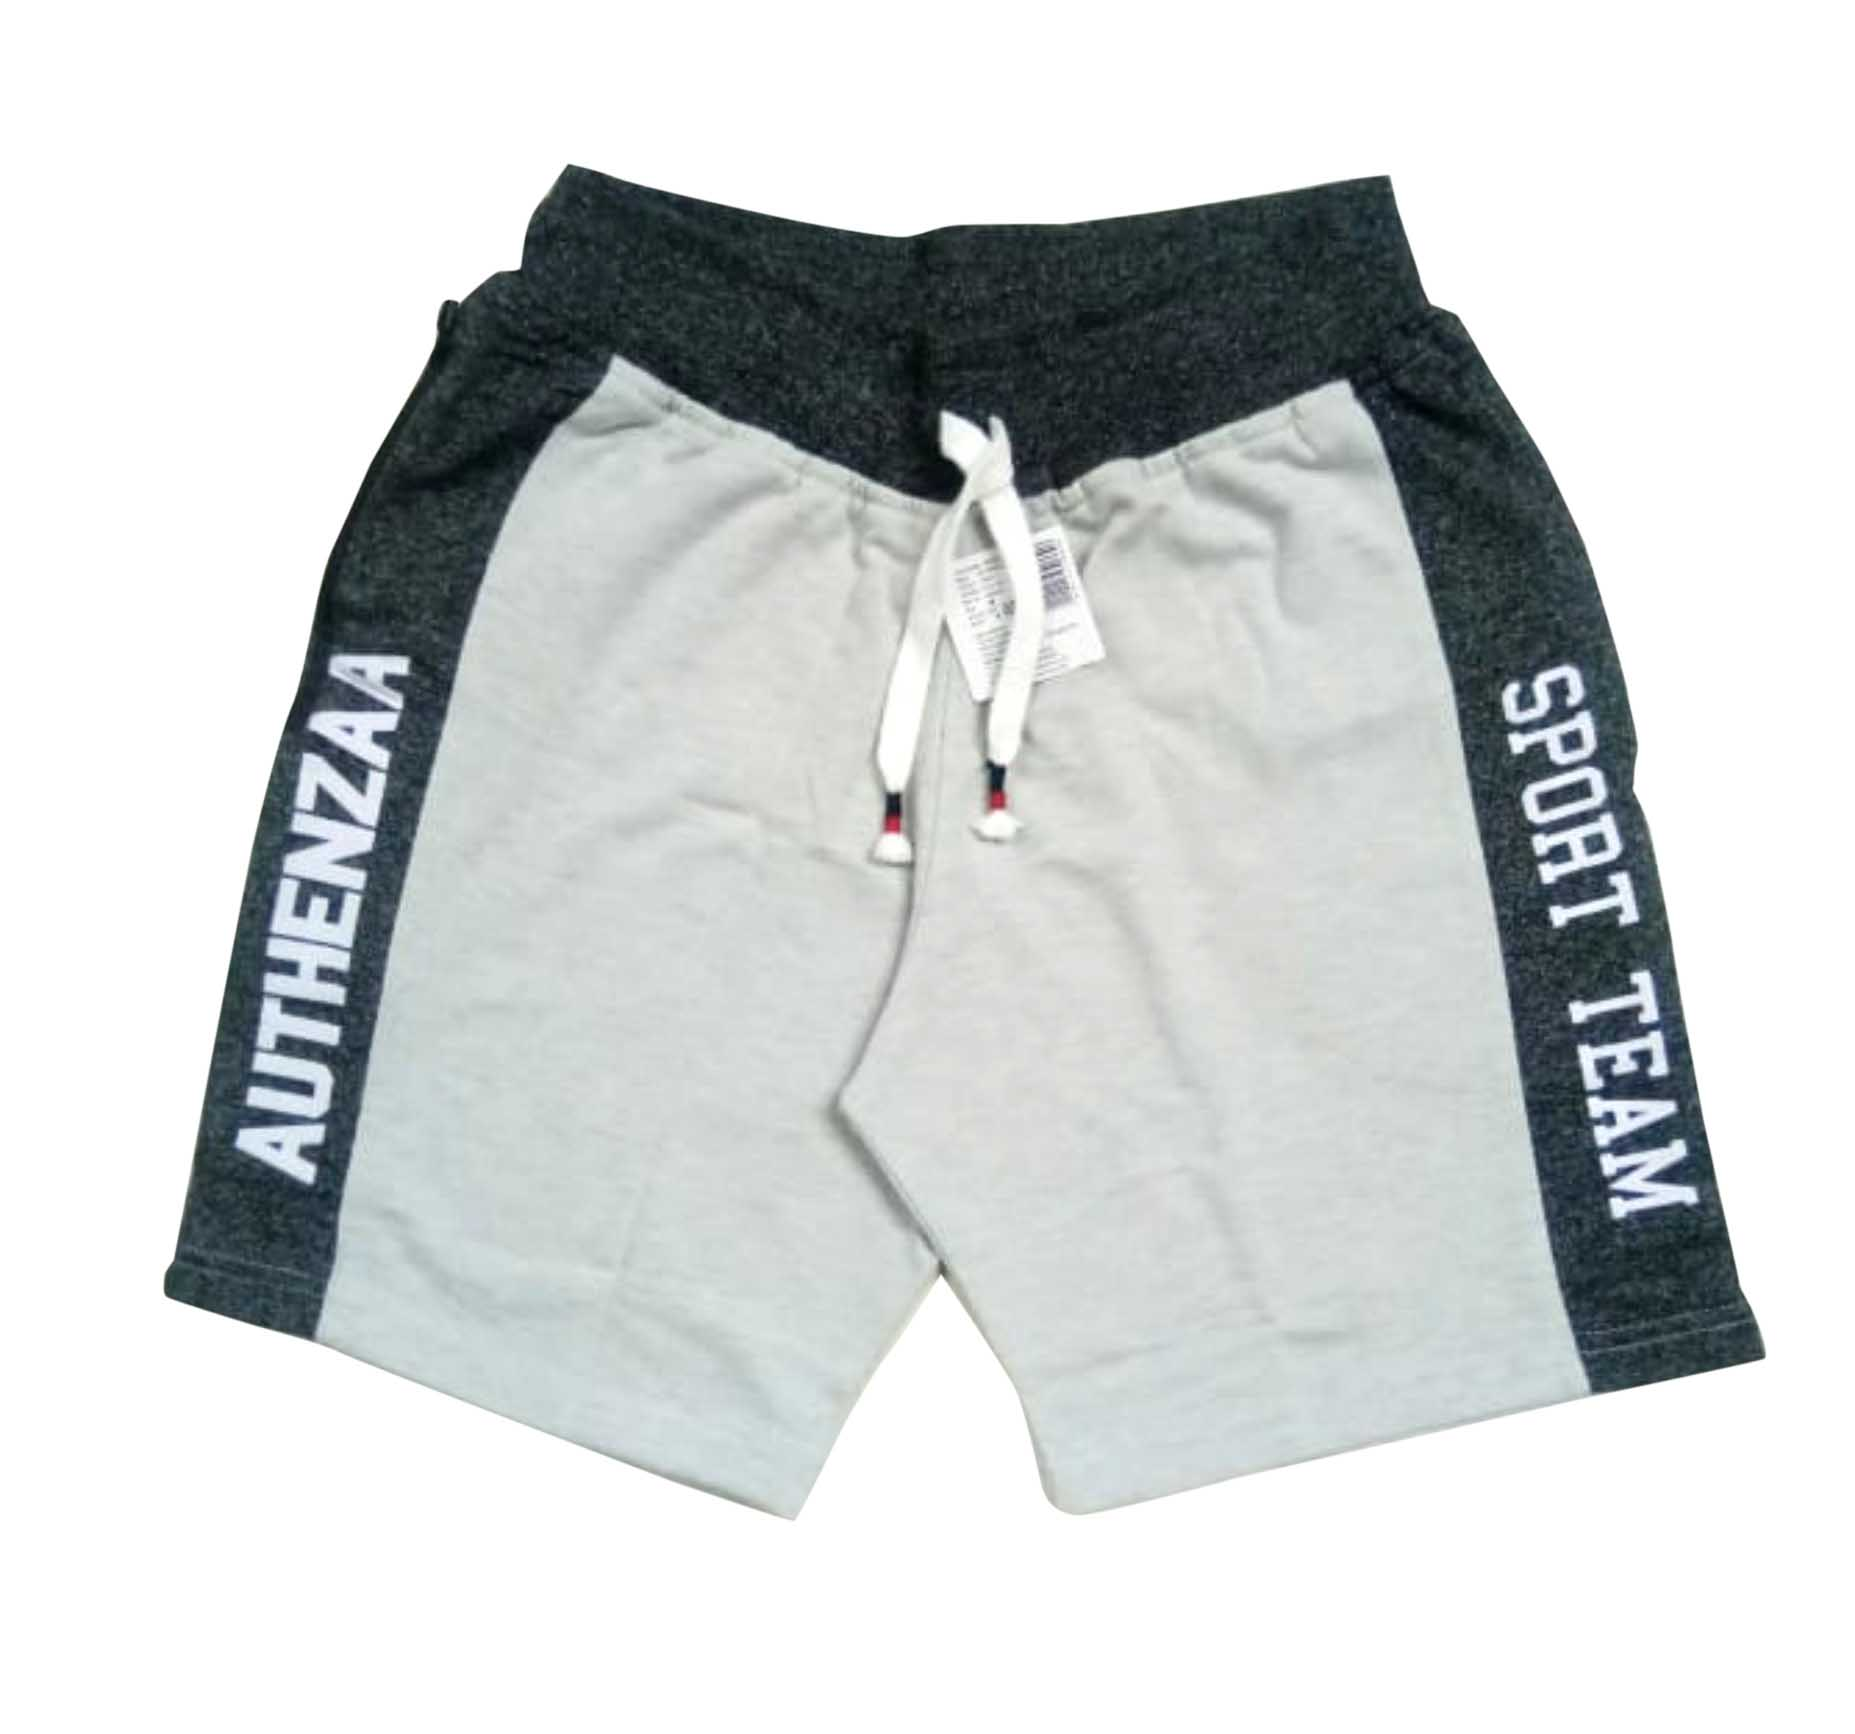 SH GRINDLE 01-GRAY 1-MN SHORTS